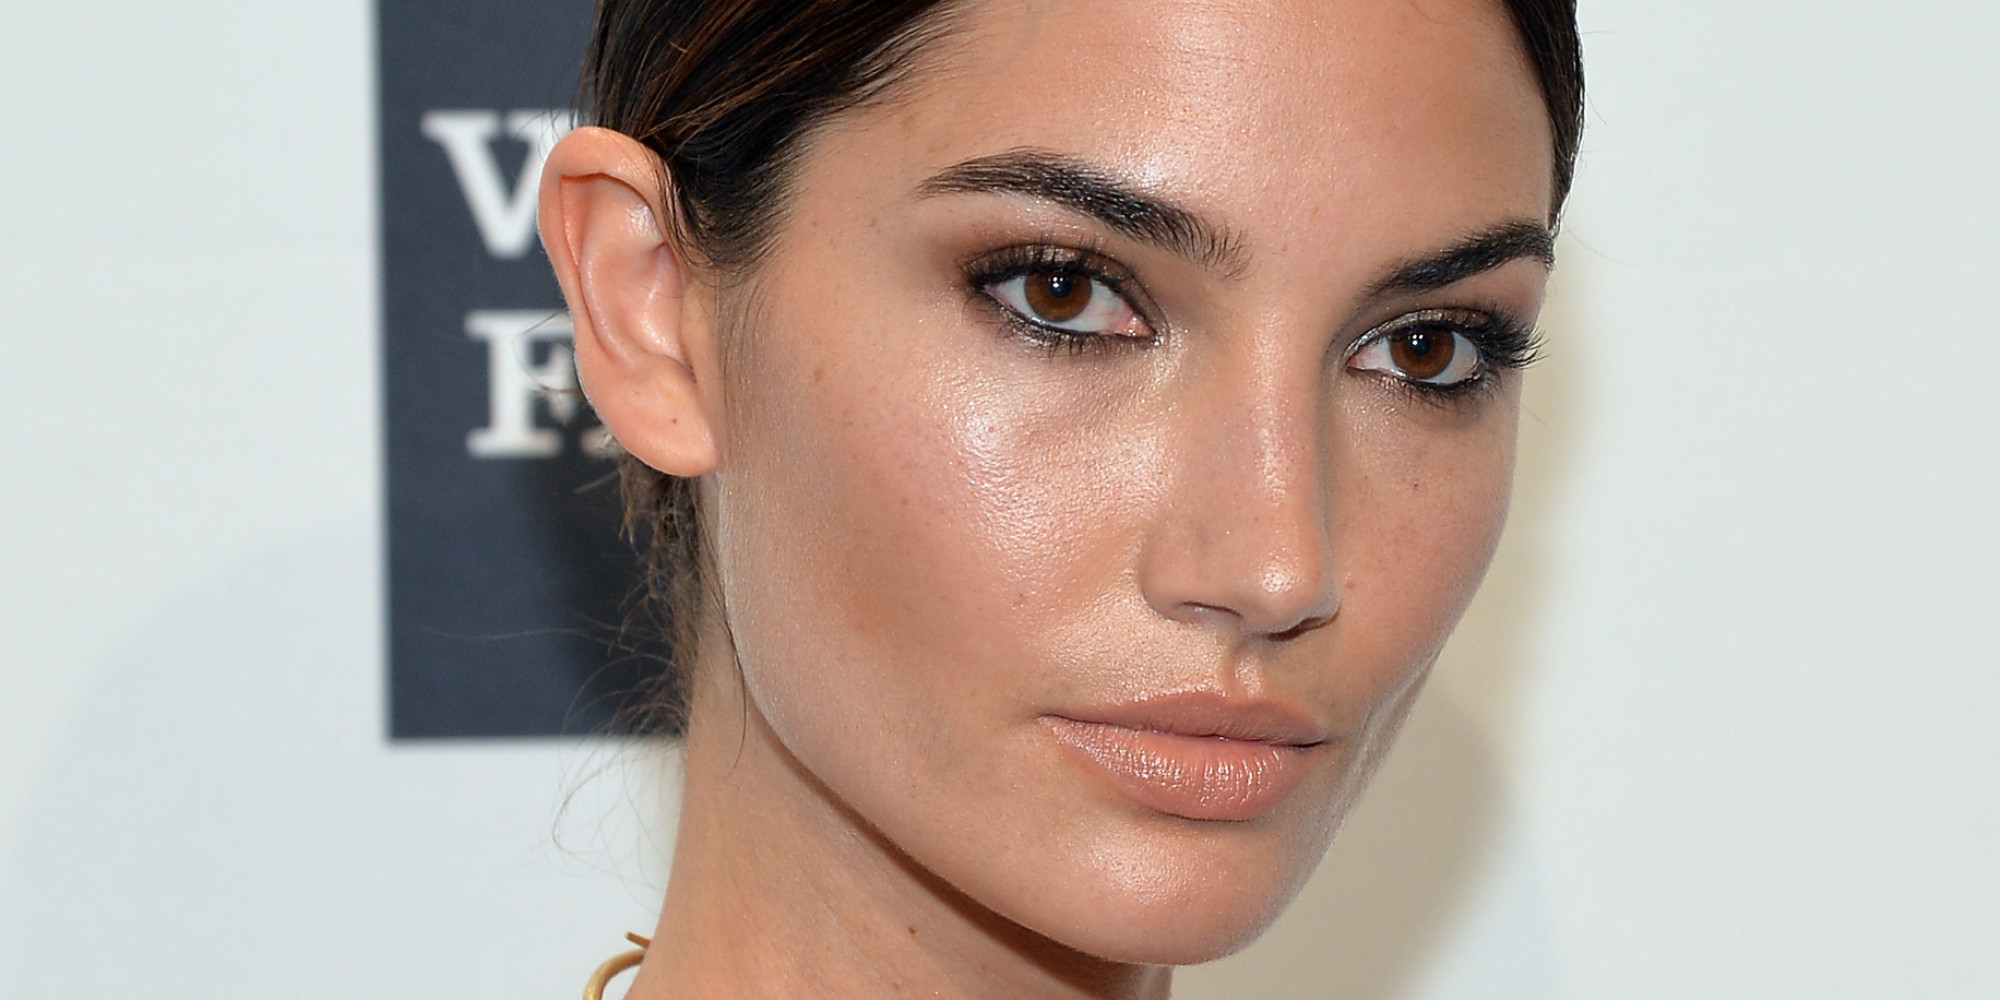 Lily Aldridge earned a  million dollar salary, leaving the net worth at 2 million in 2017